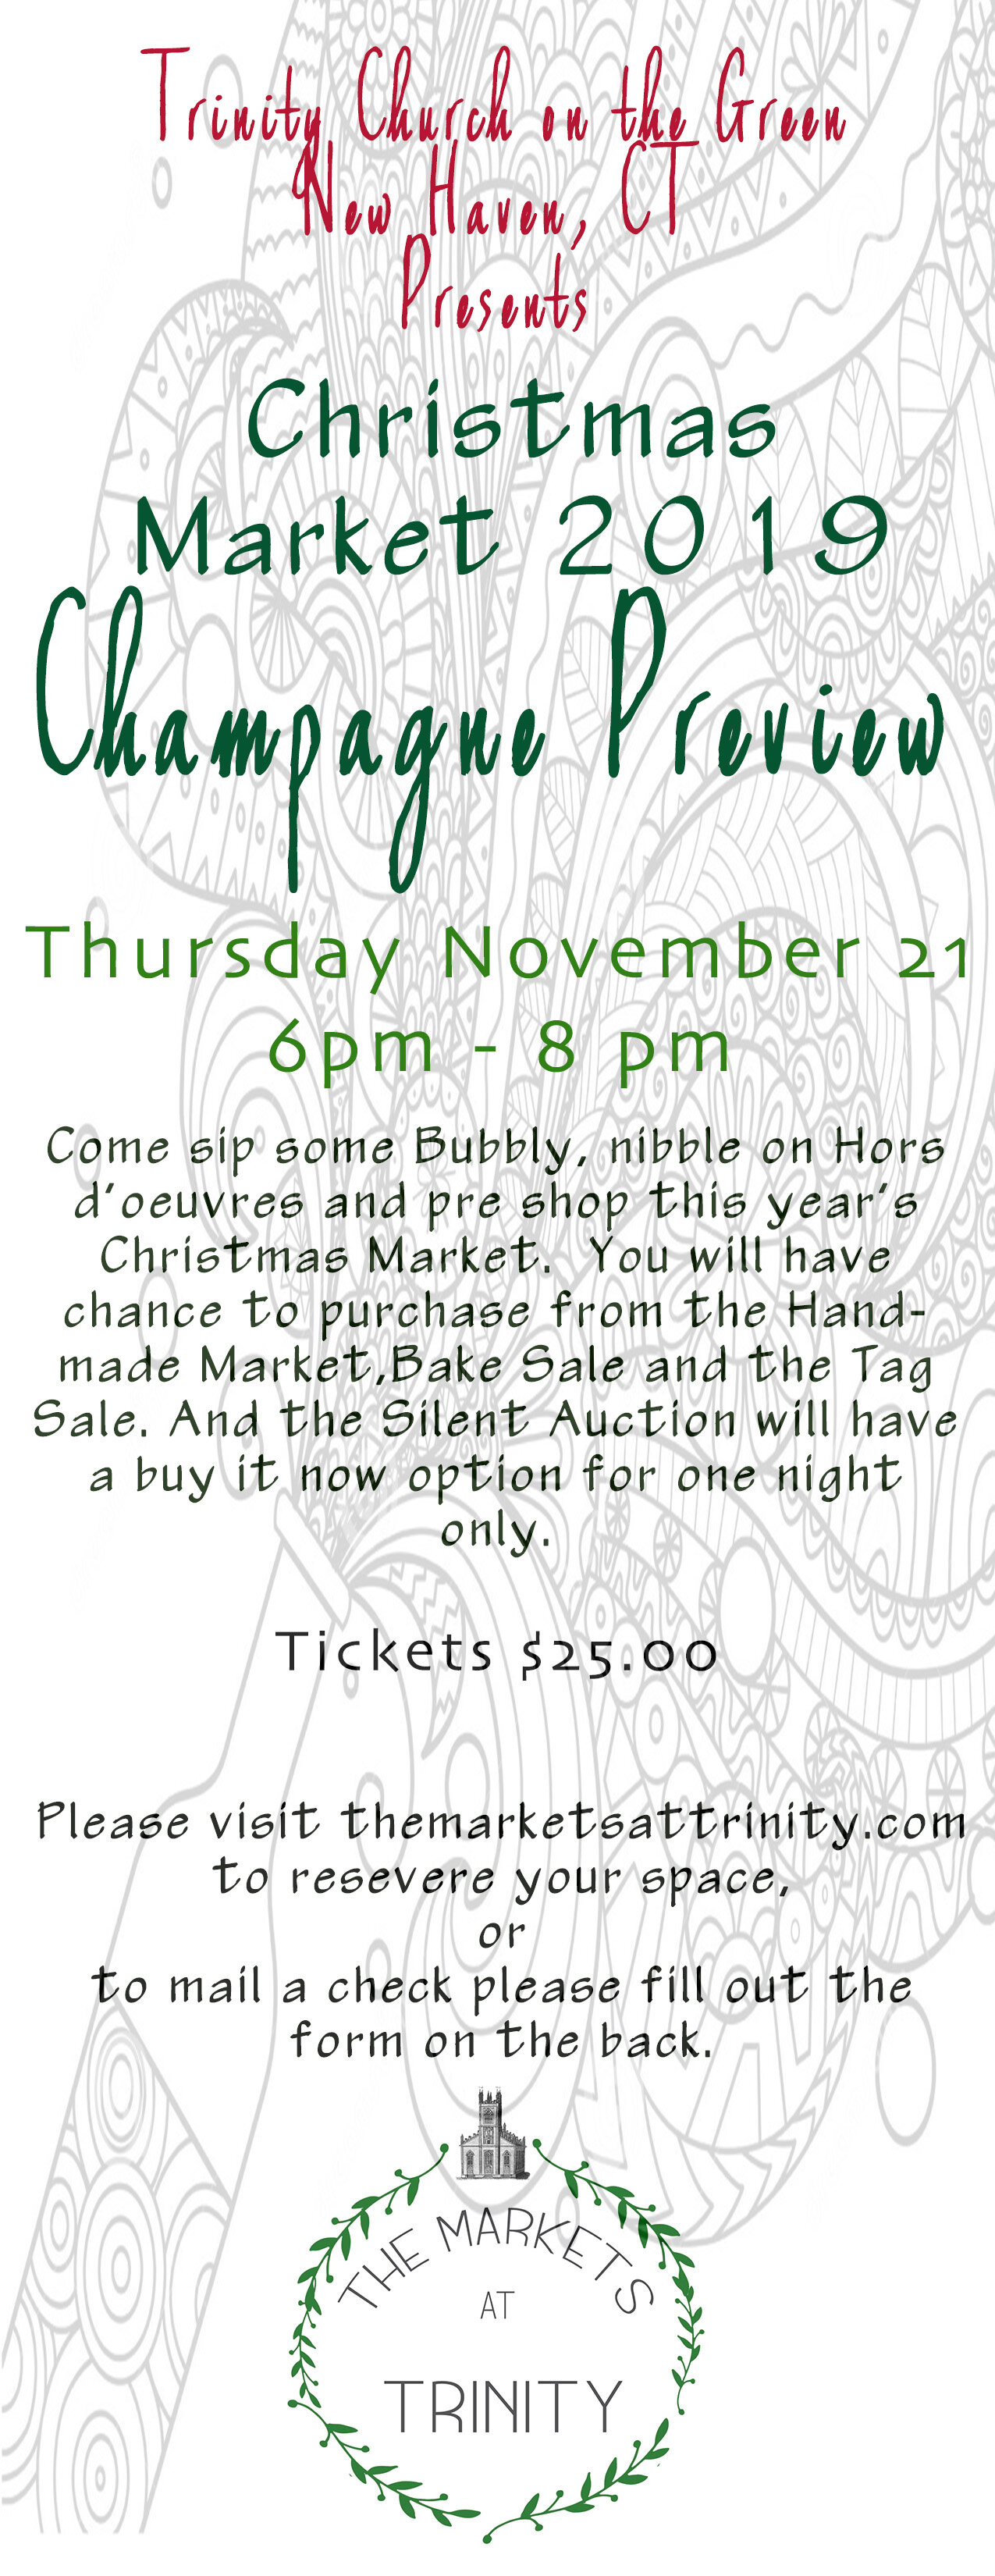 The 2019 Christmas Market is upon us. - Please join us at a Champagne preview party on Thursday Nov. 21. Tickets are now available.